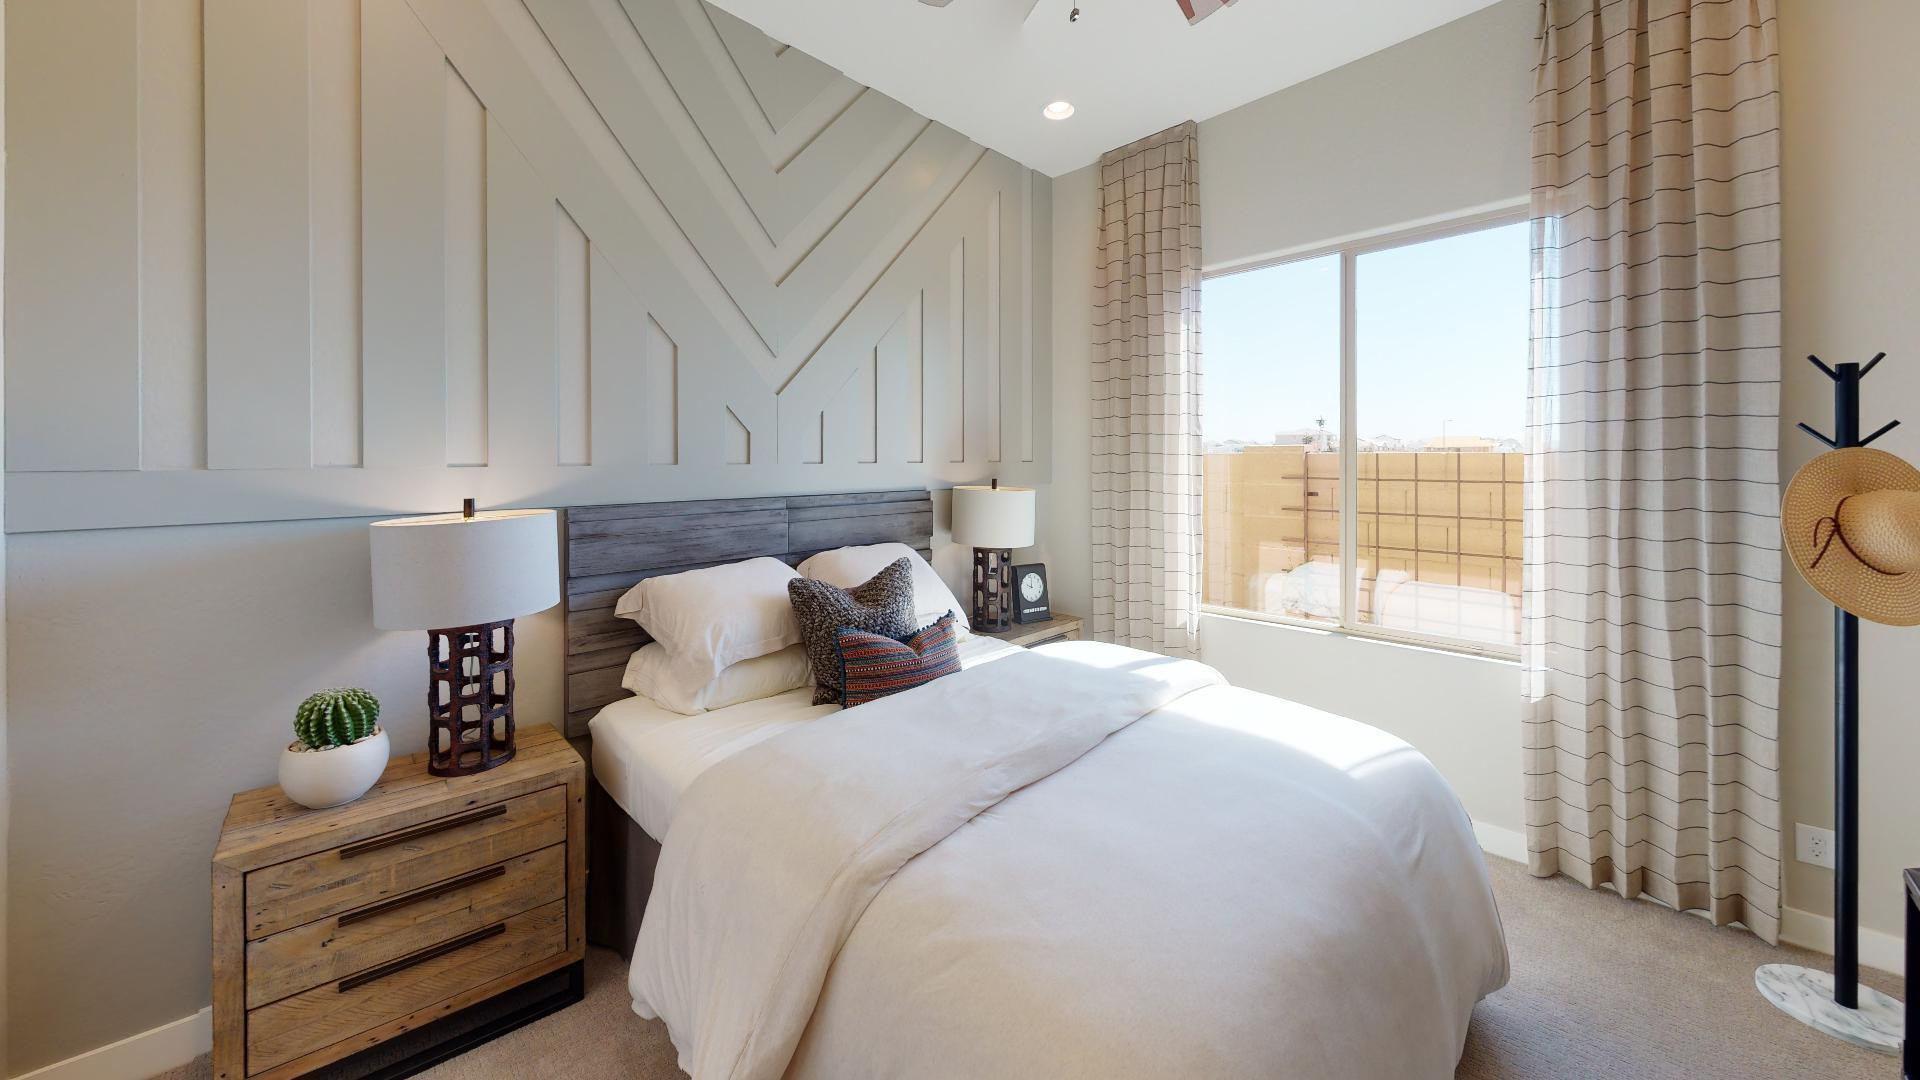 Bedroom featured in the San Tan - Plan 2 By Cresleigh Homes Arizona, Inc. in Phoenix-Mesa, AZ